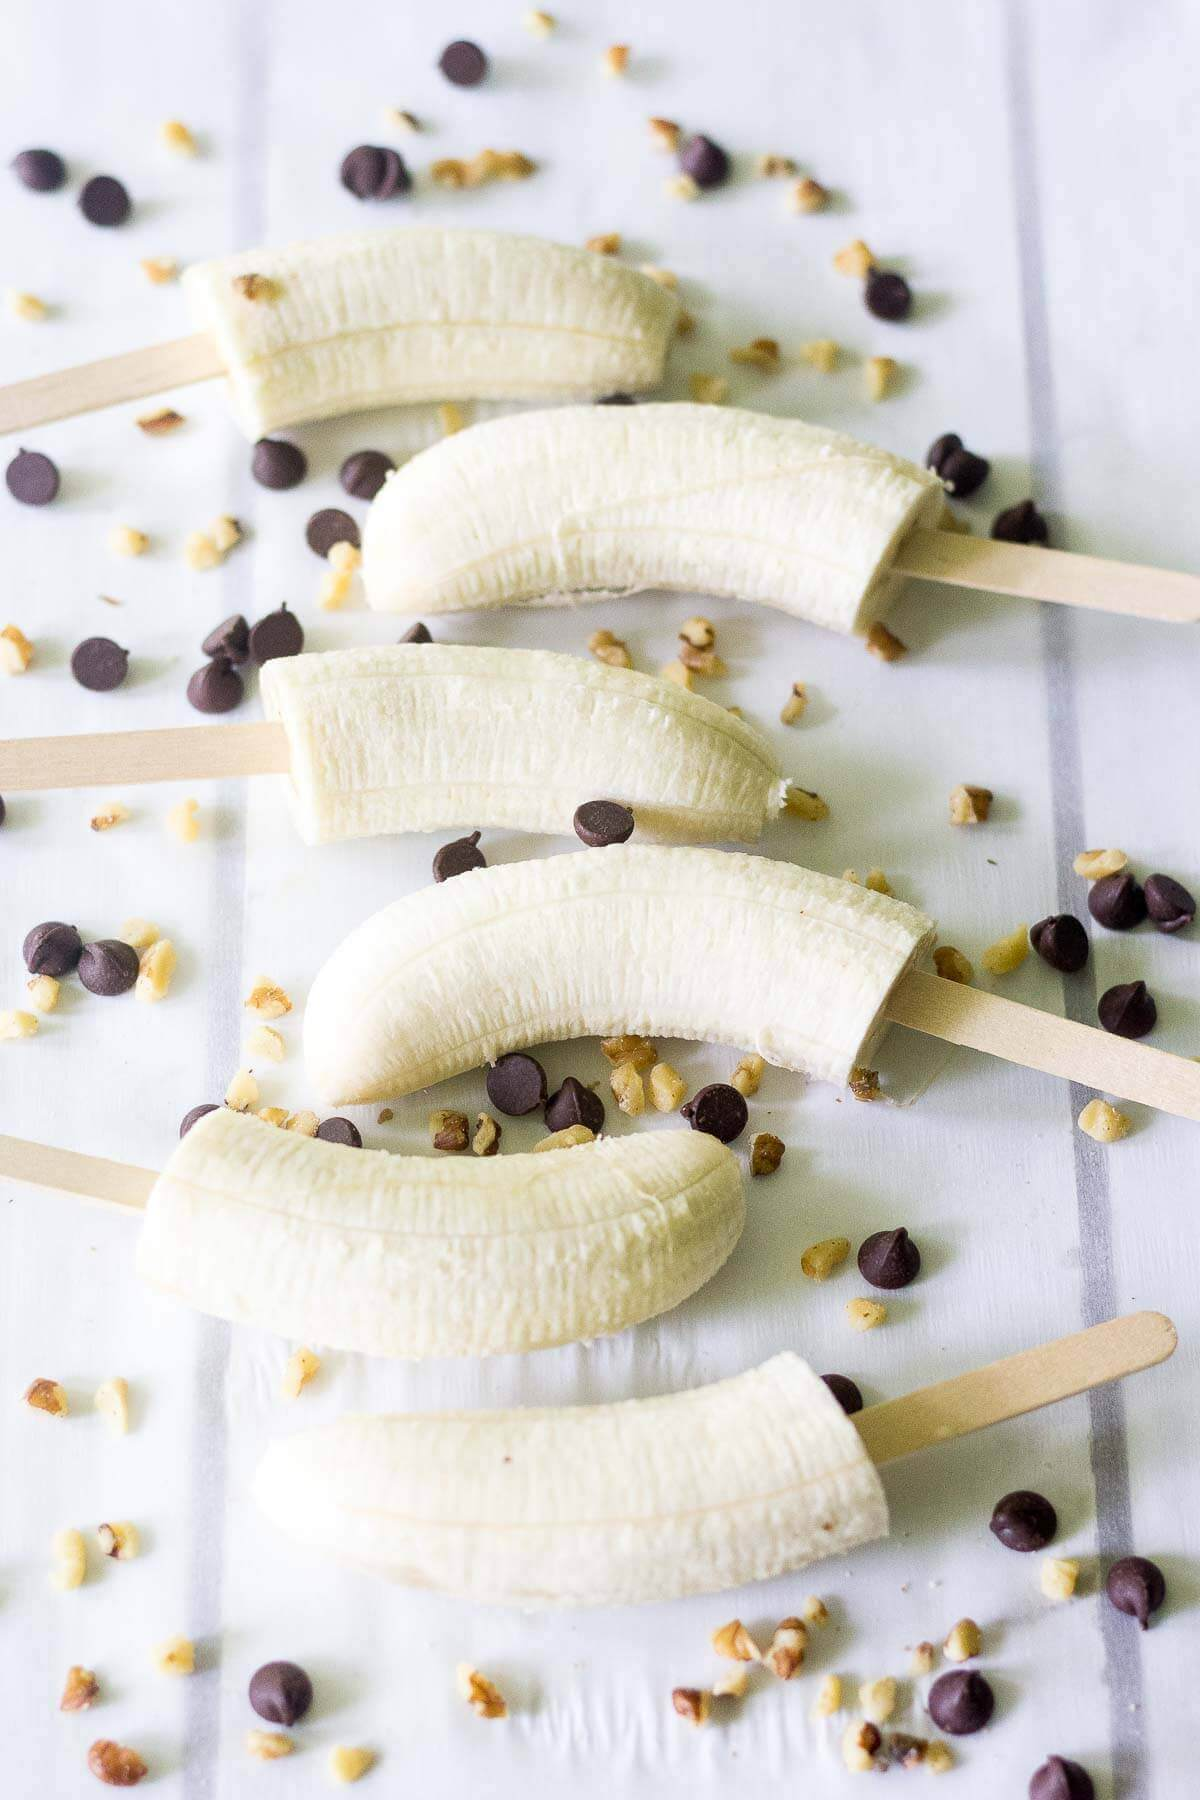 This healthy frozen treat is a guaranteed crowd pleaser! You're going to flip for how easy they are to make and all of the natural, healthy ingredients you use to make them. Make a bunch of these paleo frozen bananas and keep them in the freezer for whenever you and your family need a sweet (but healthy) dessert.